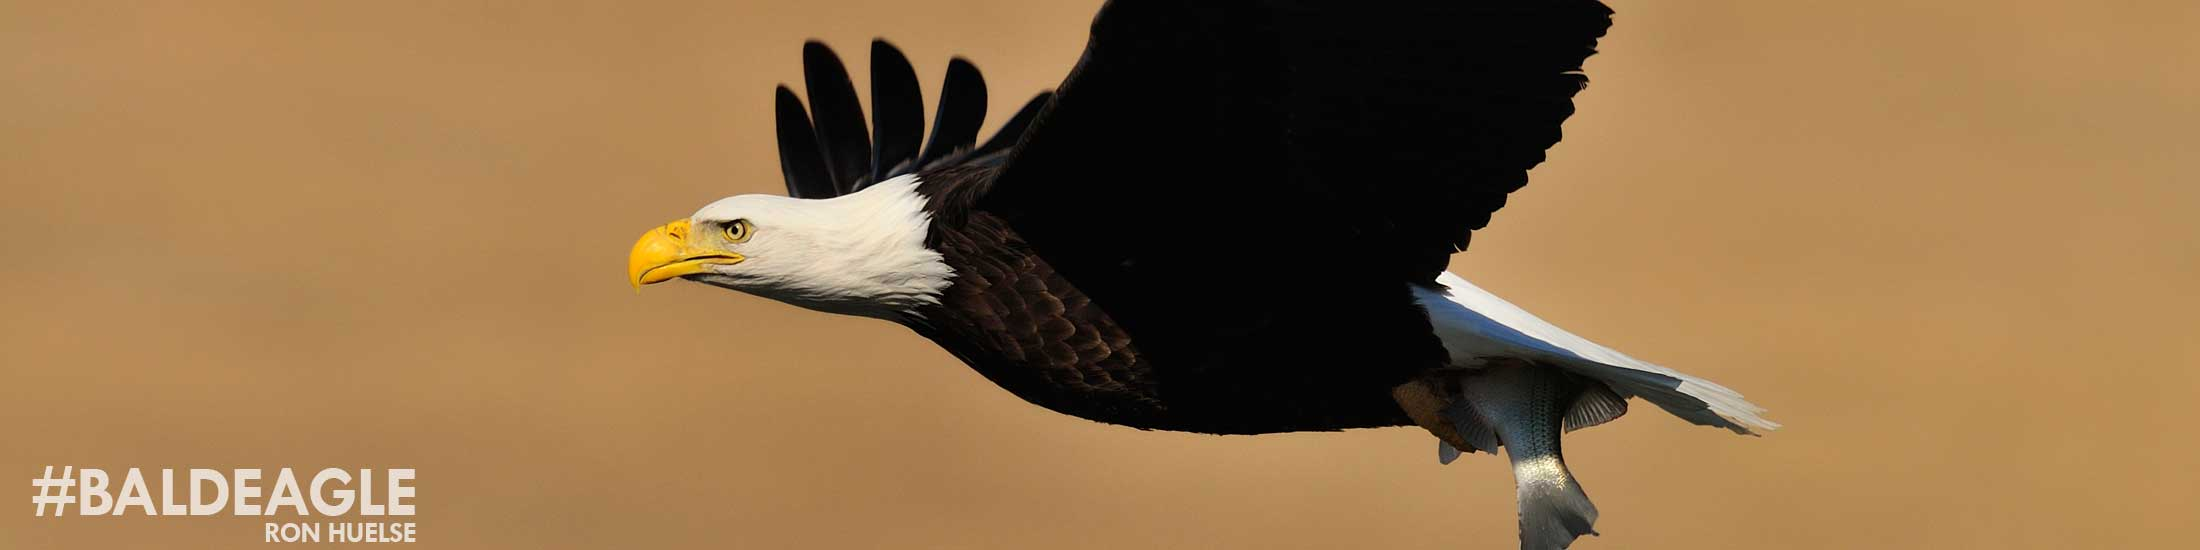 wildlife_eagle01